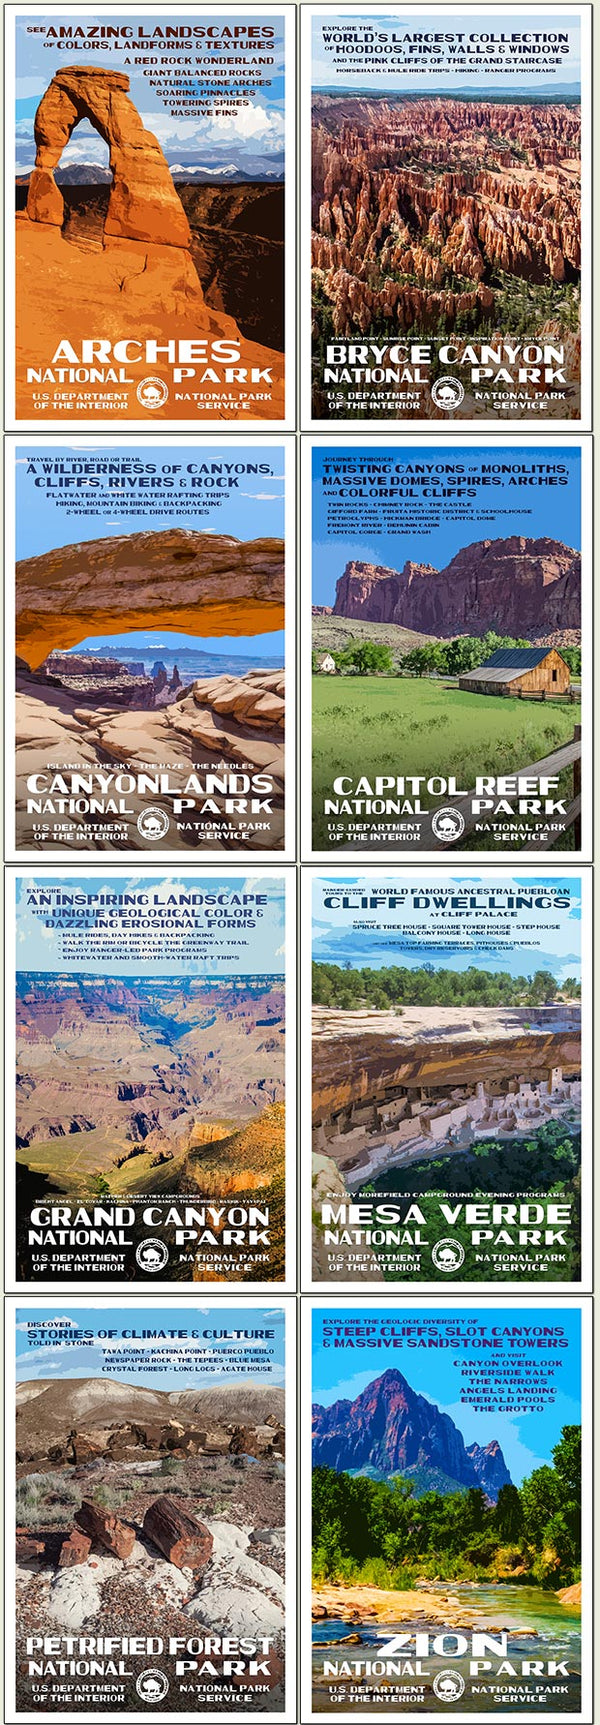 Colorado Plateau Collection